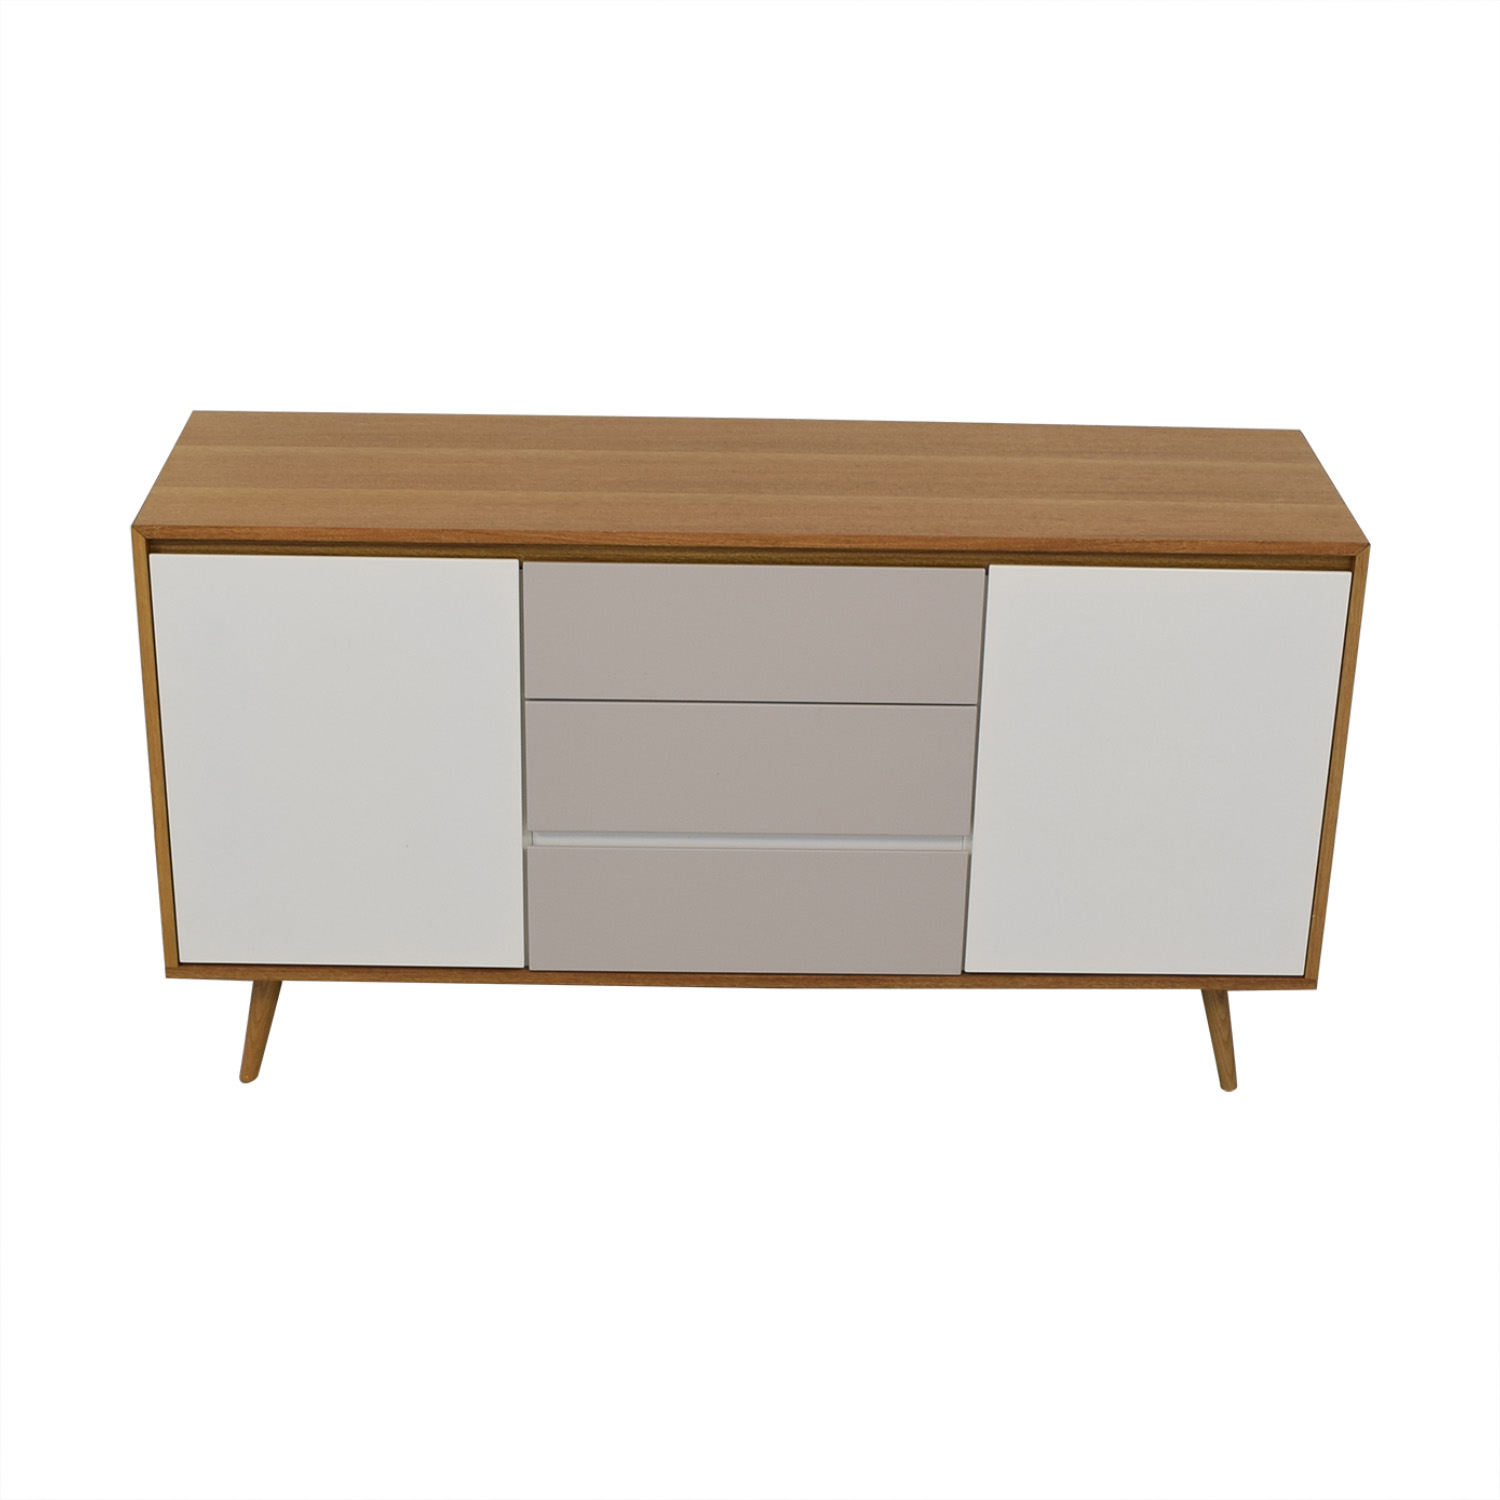 buy Rove Concepts Lucas Sideboard Rove Concepts Cabinets & Sideboards